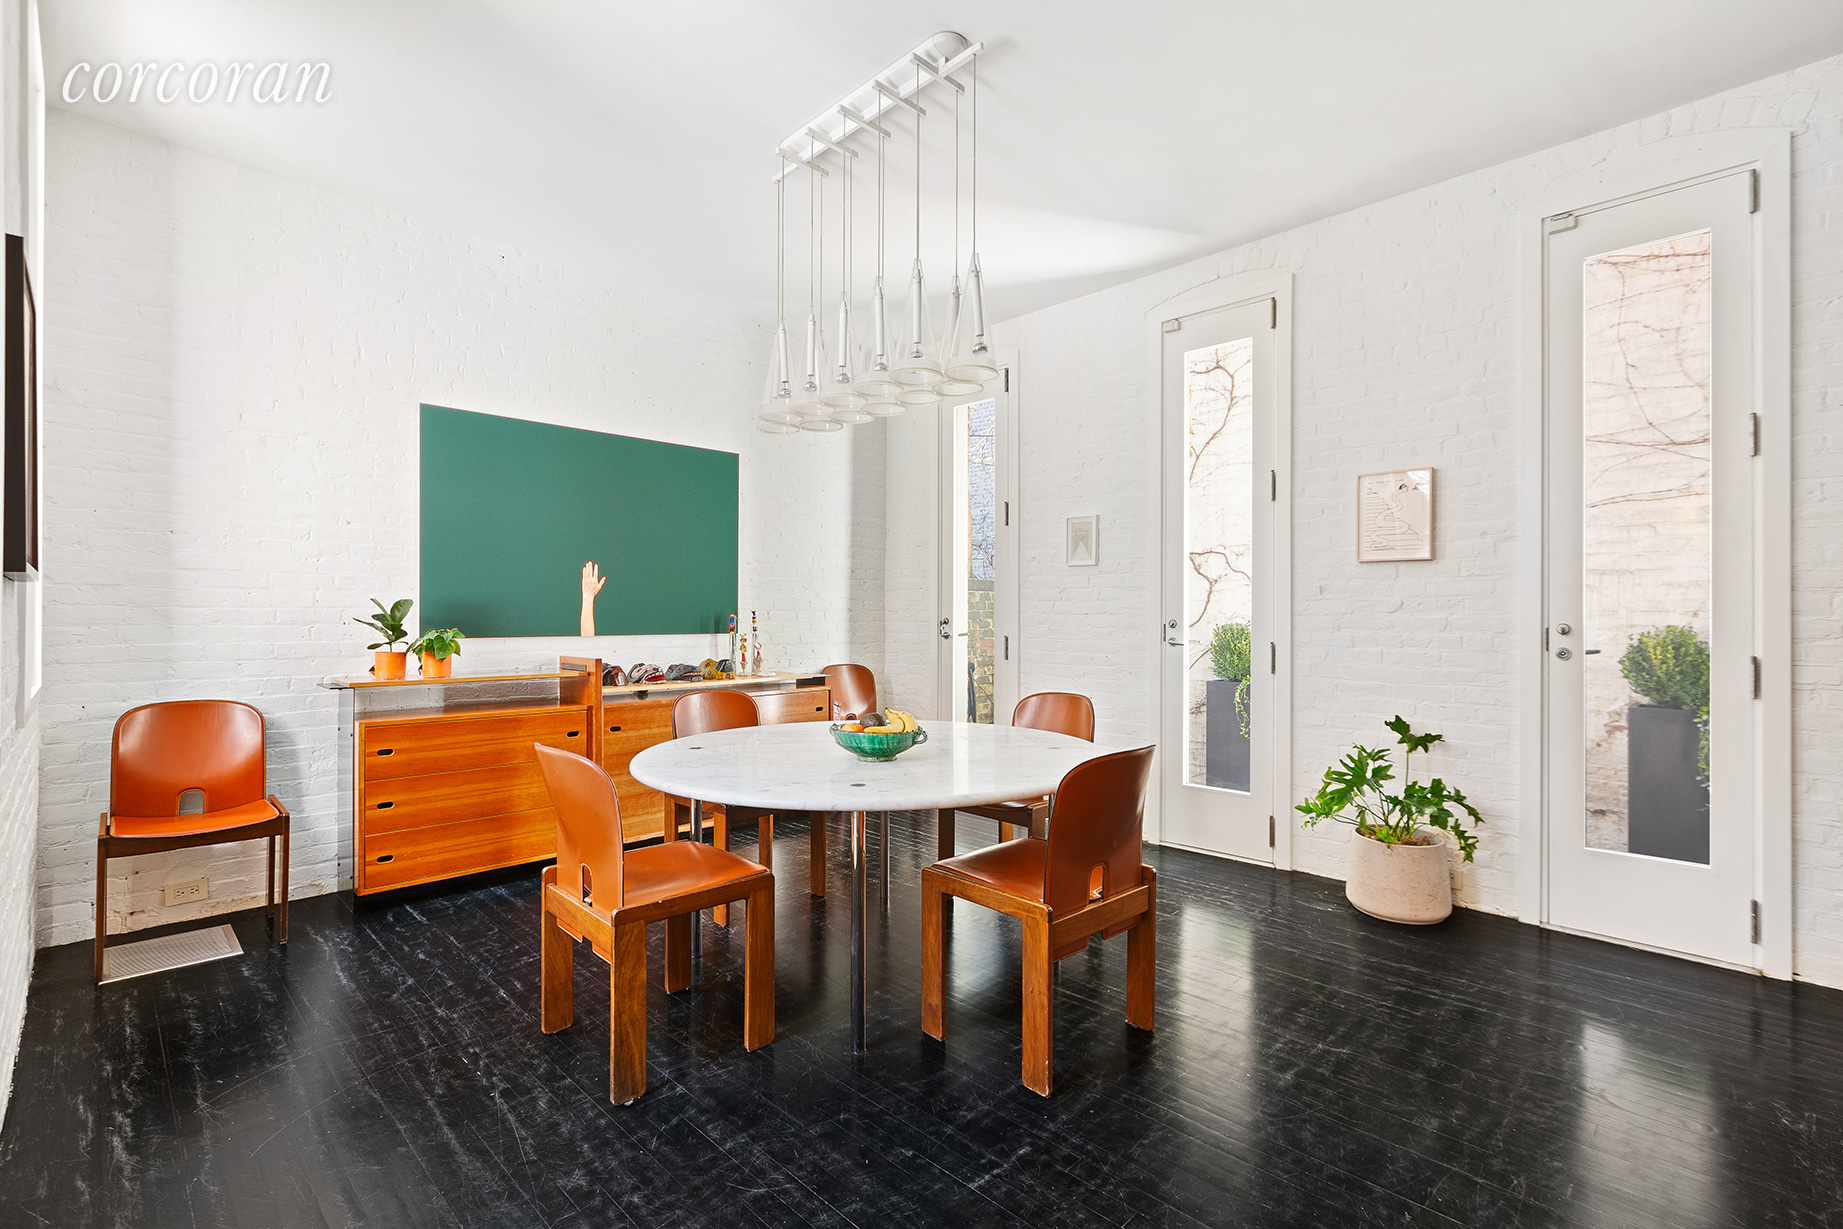 Stained wooden floors and whitewashed brick walls create a clean palette for the property's new owner